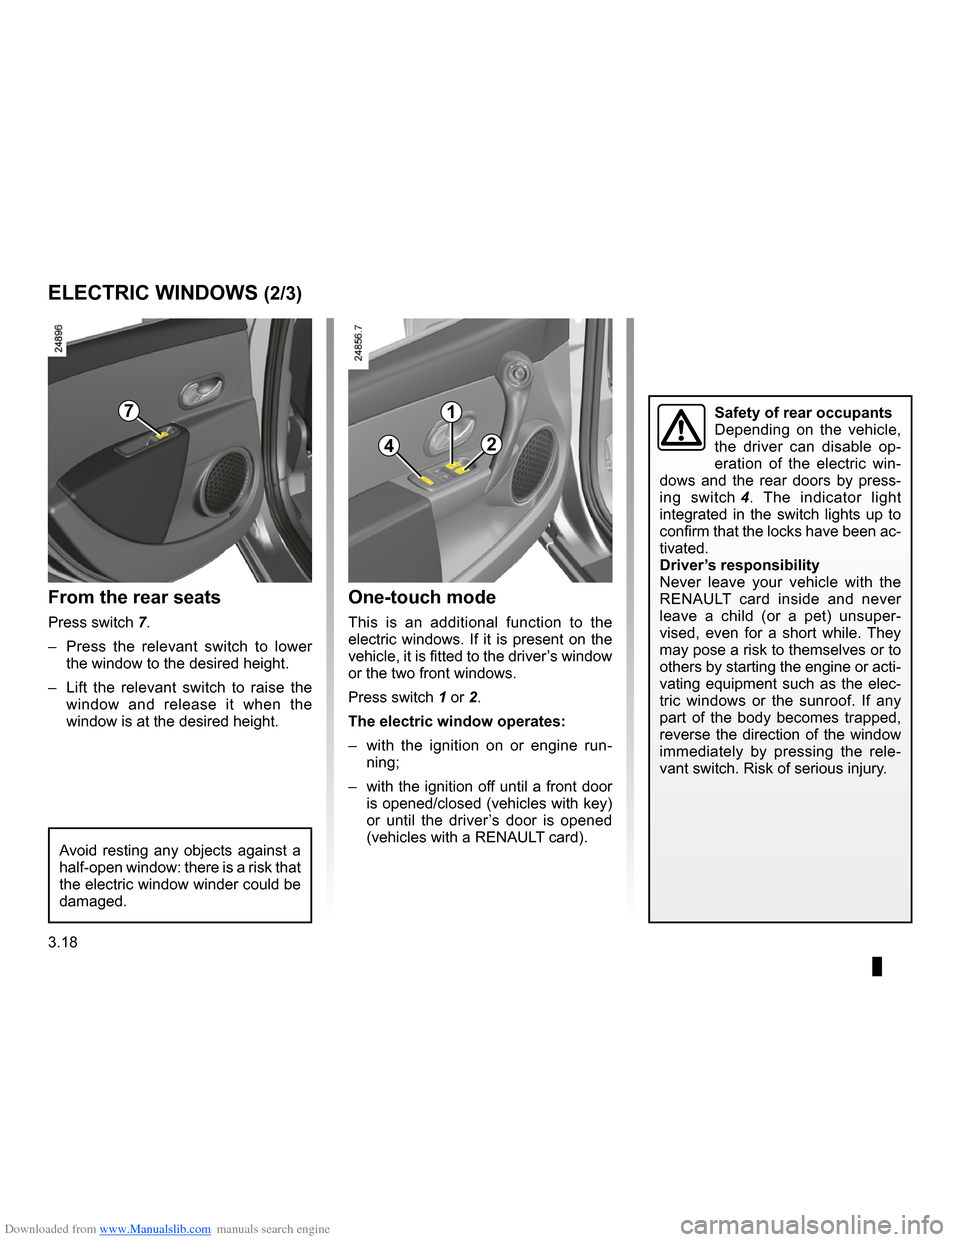 RENAULT CLIO 2009 X85 / 3.G Owners Manual, Page 150